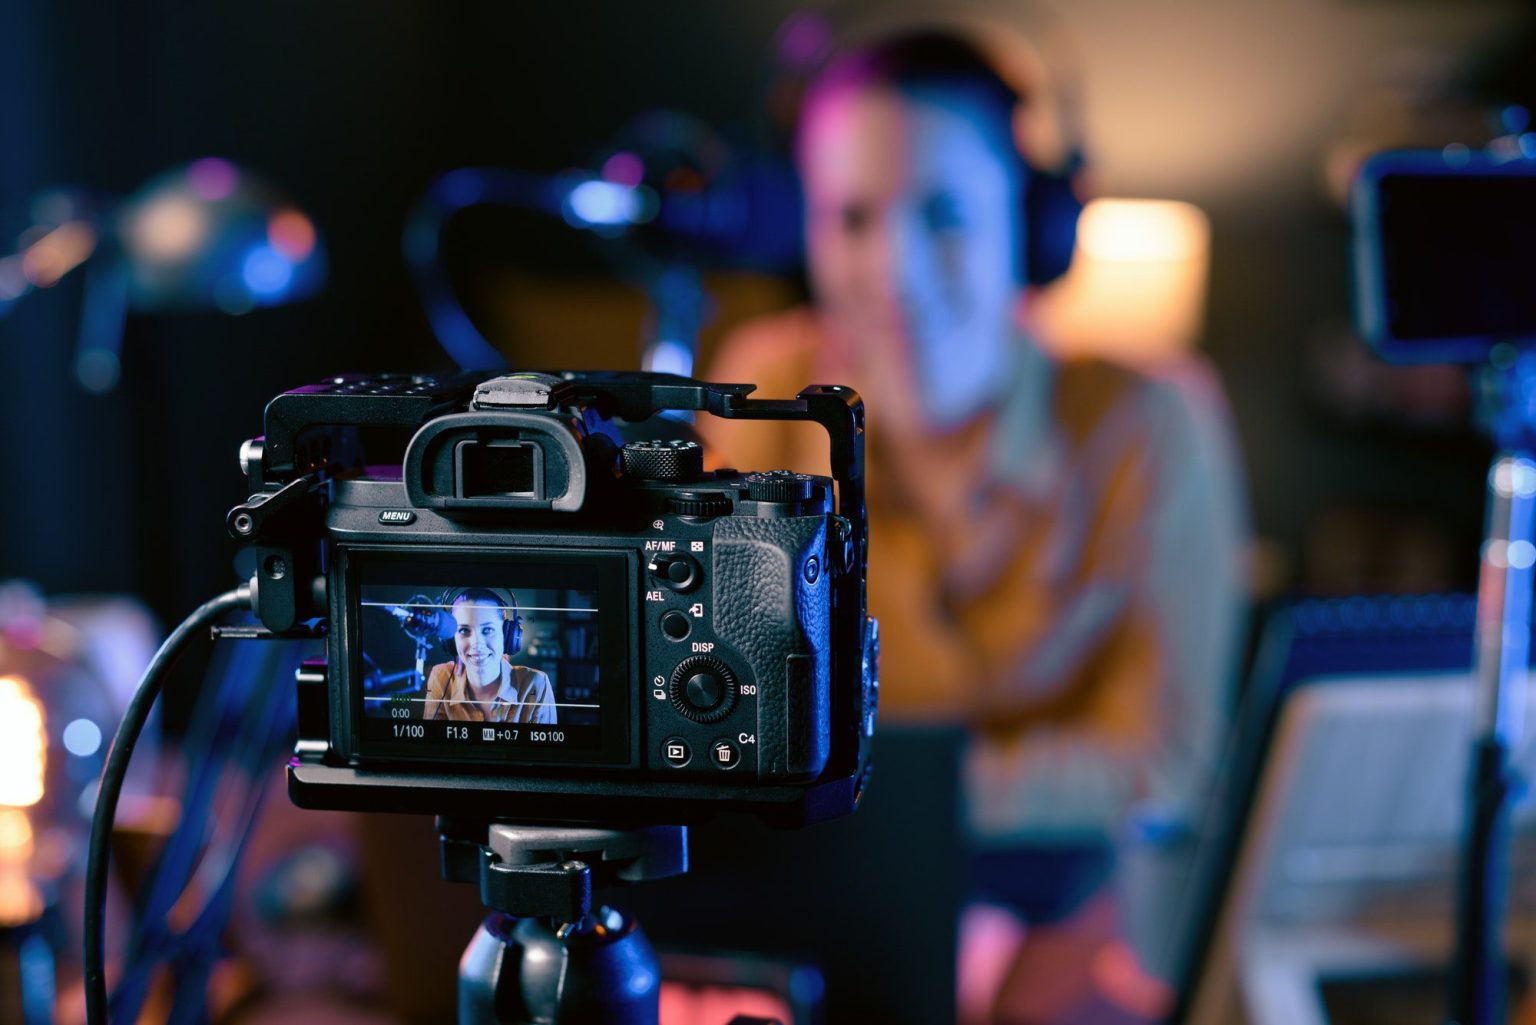 Youtuber recording her video in the studio